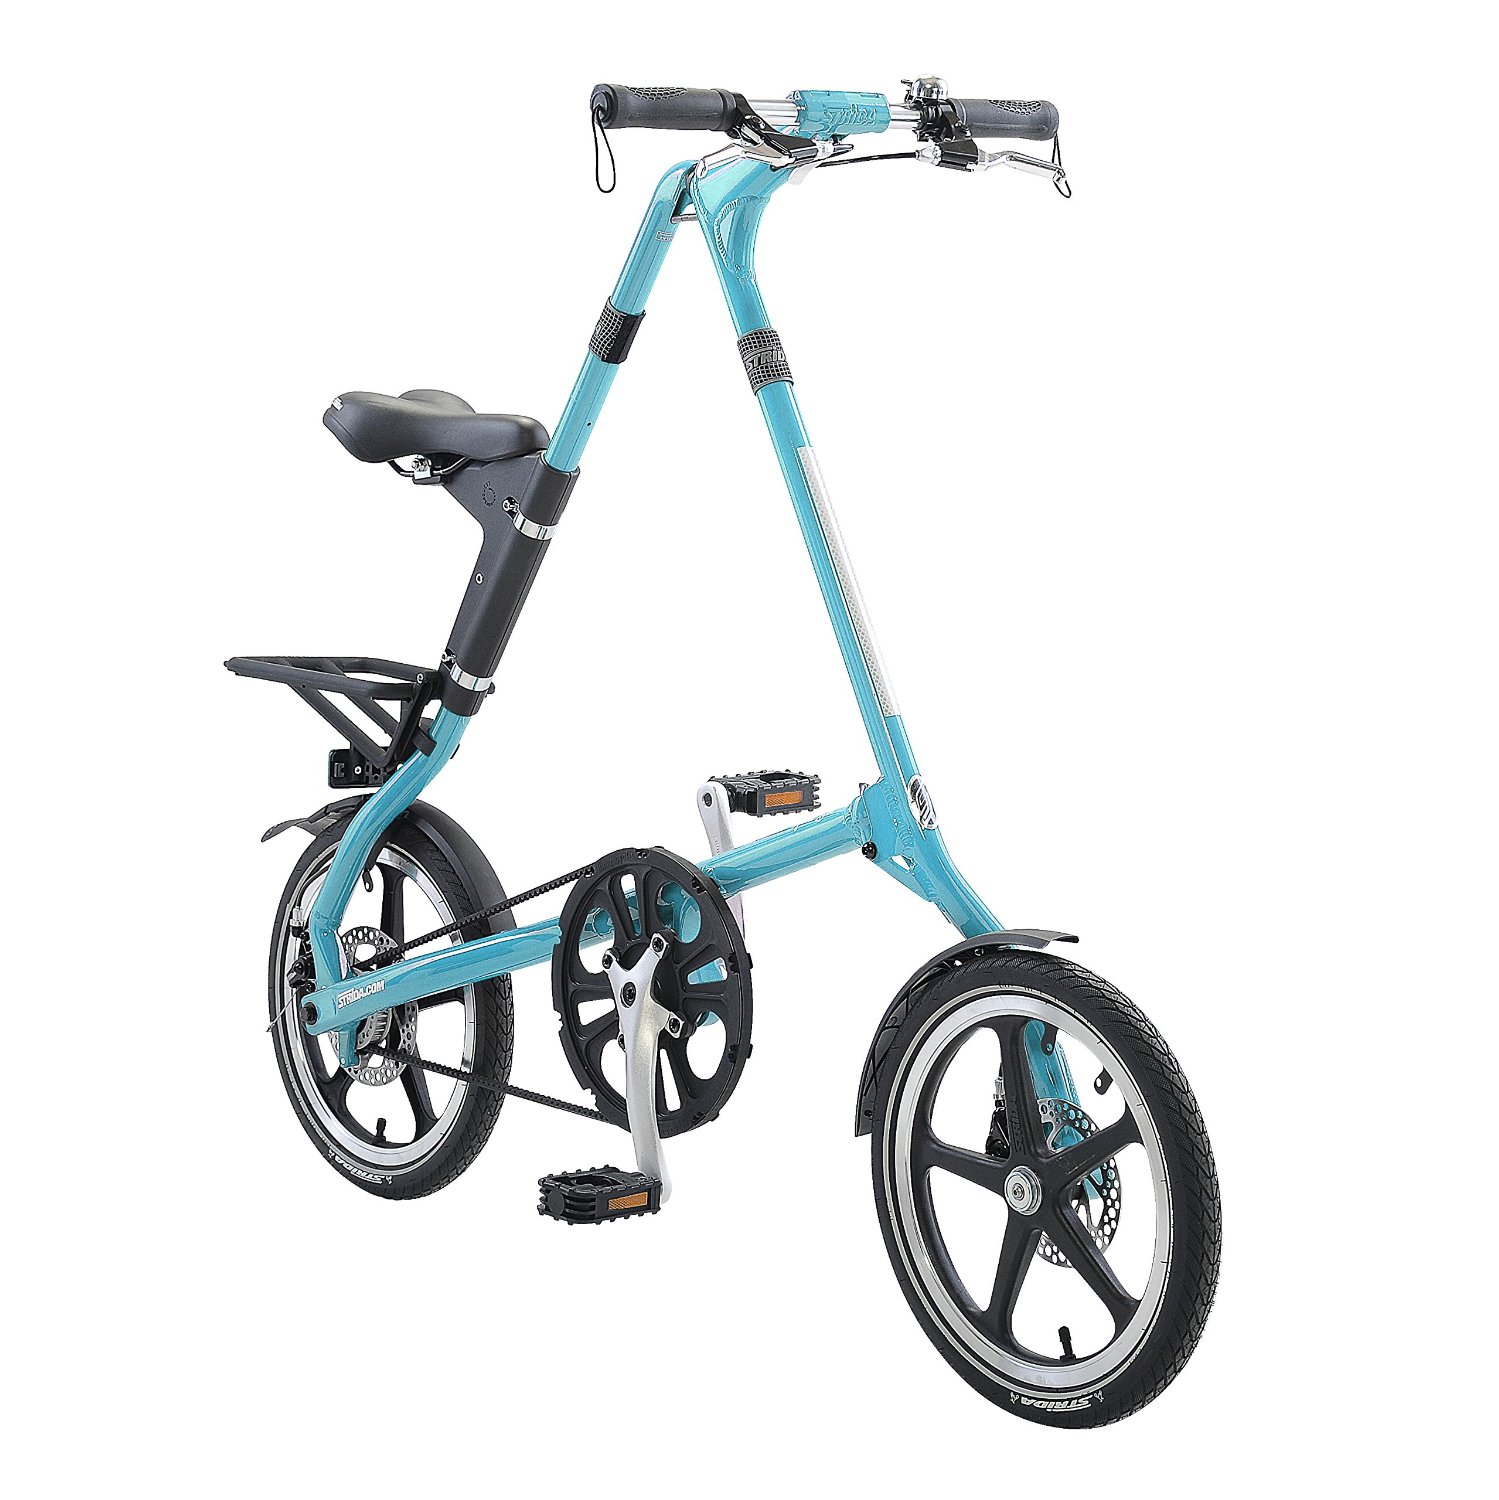 STRiDA LT Bicycle